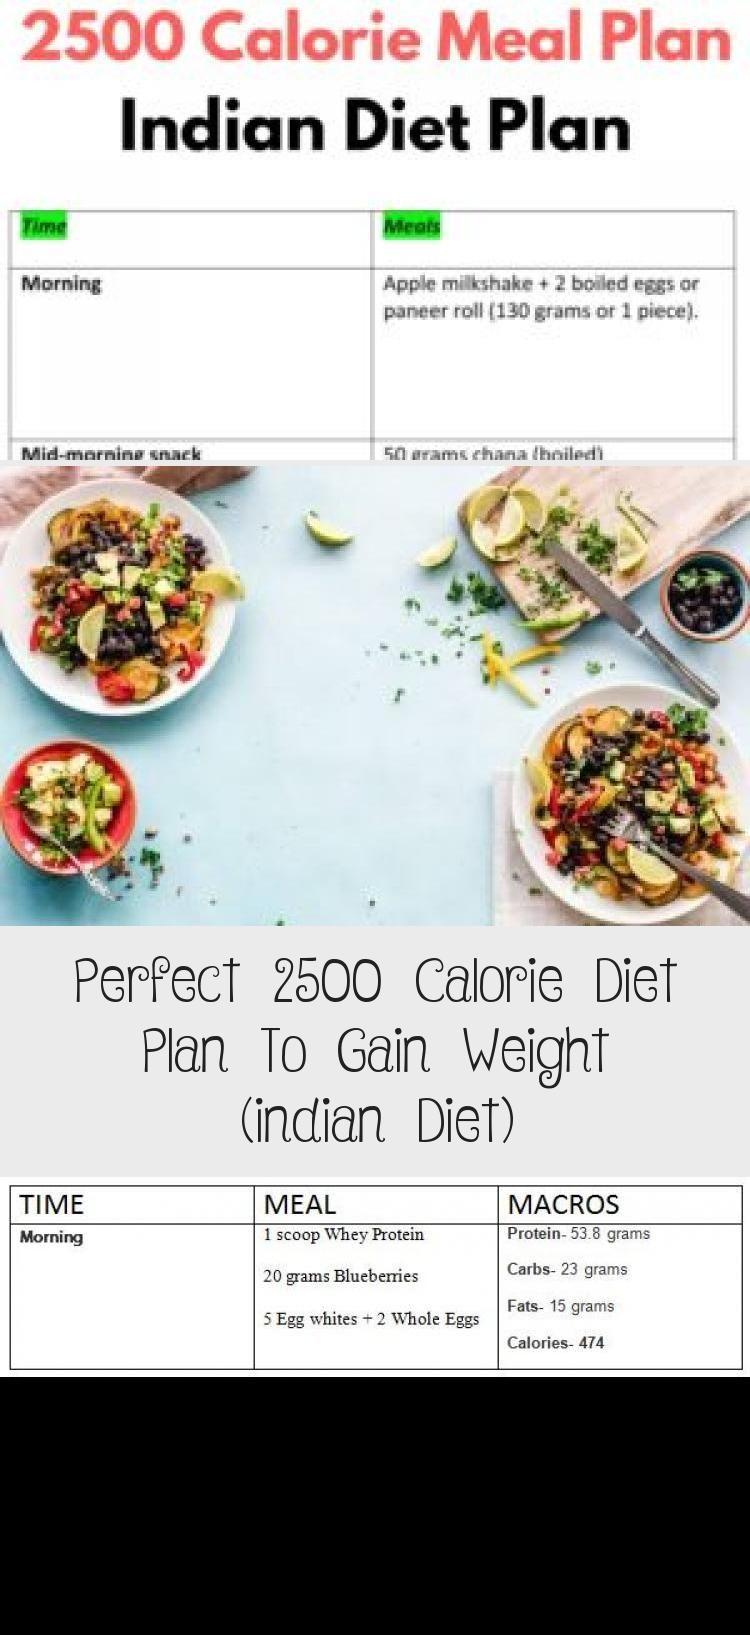 Perfect 2500 Calorie Diet Plan To Gain Weight (indian Diet